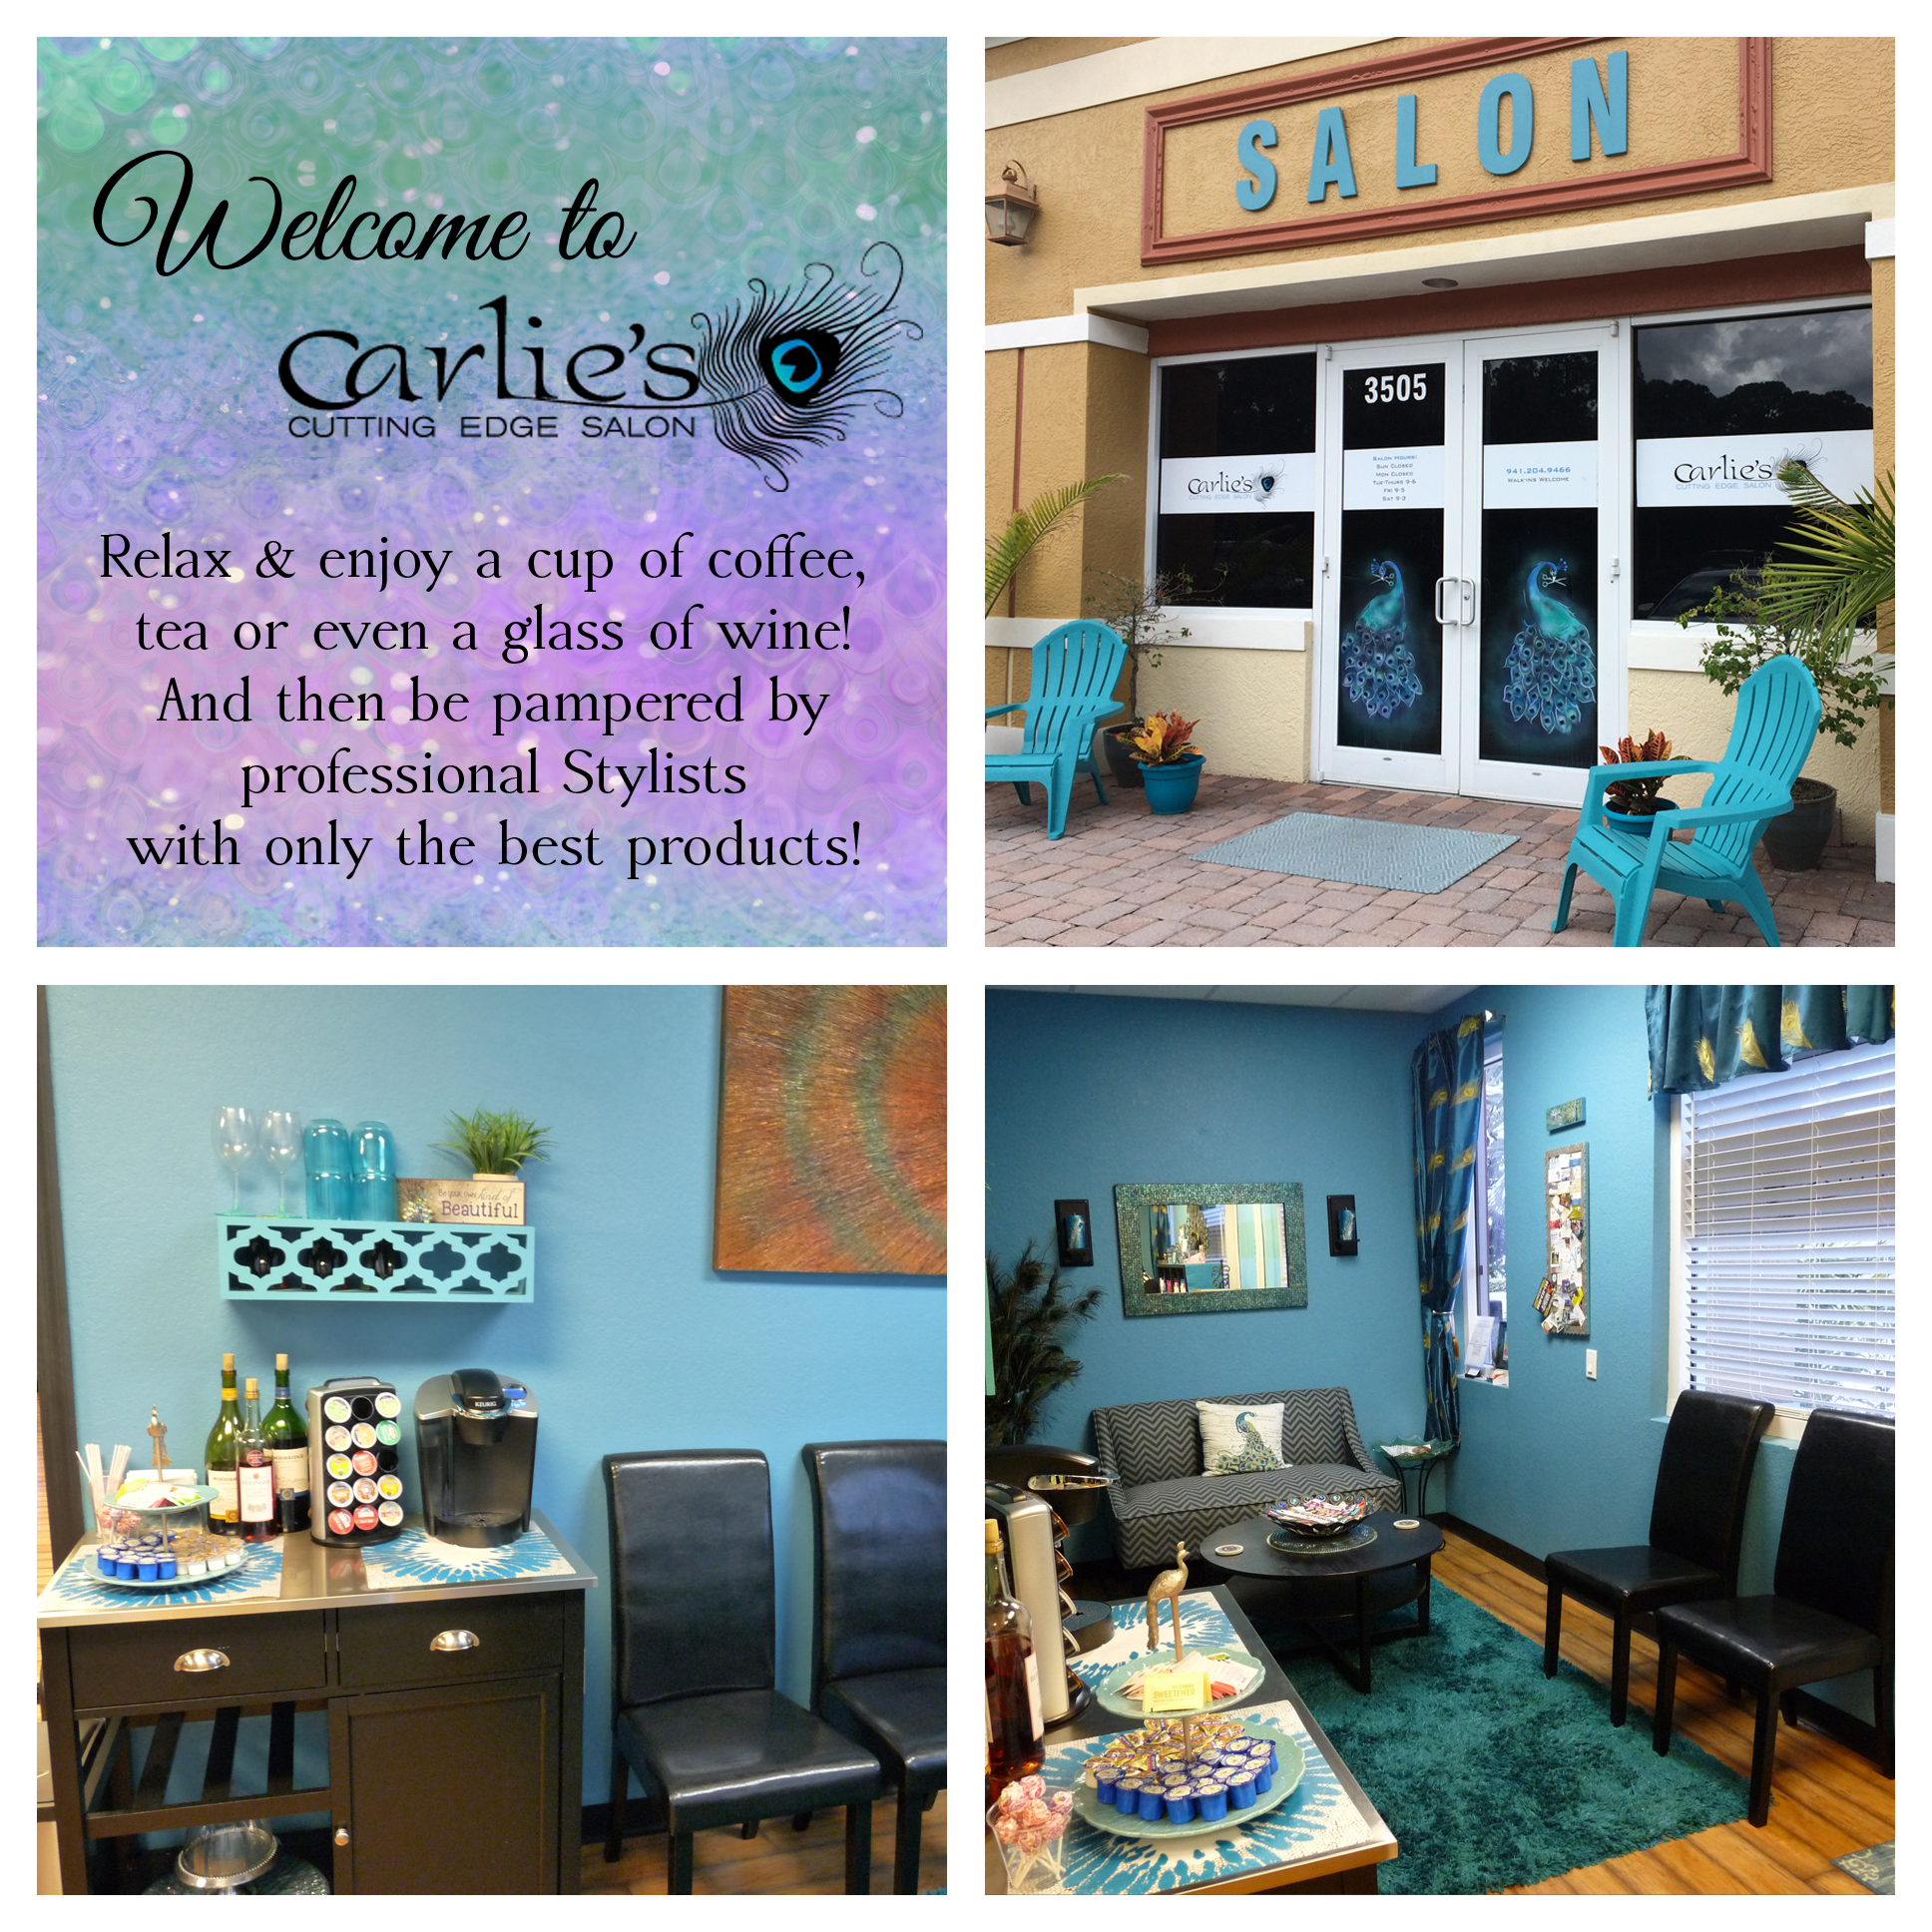 Friendly professional salon carlie 39 s cutting edge salon for A cutting edge salon